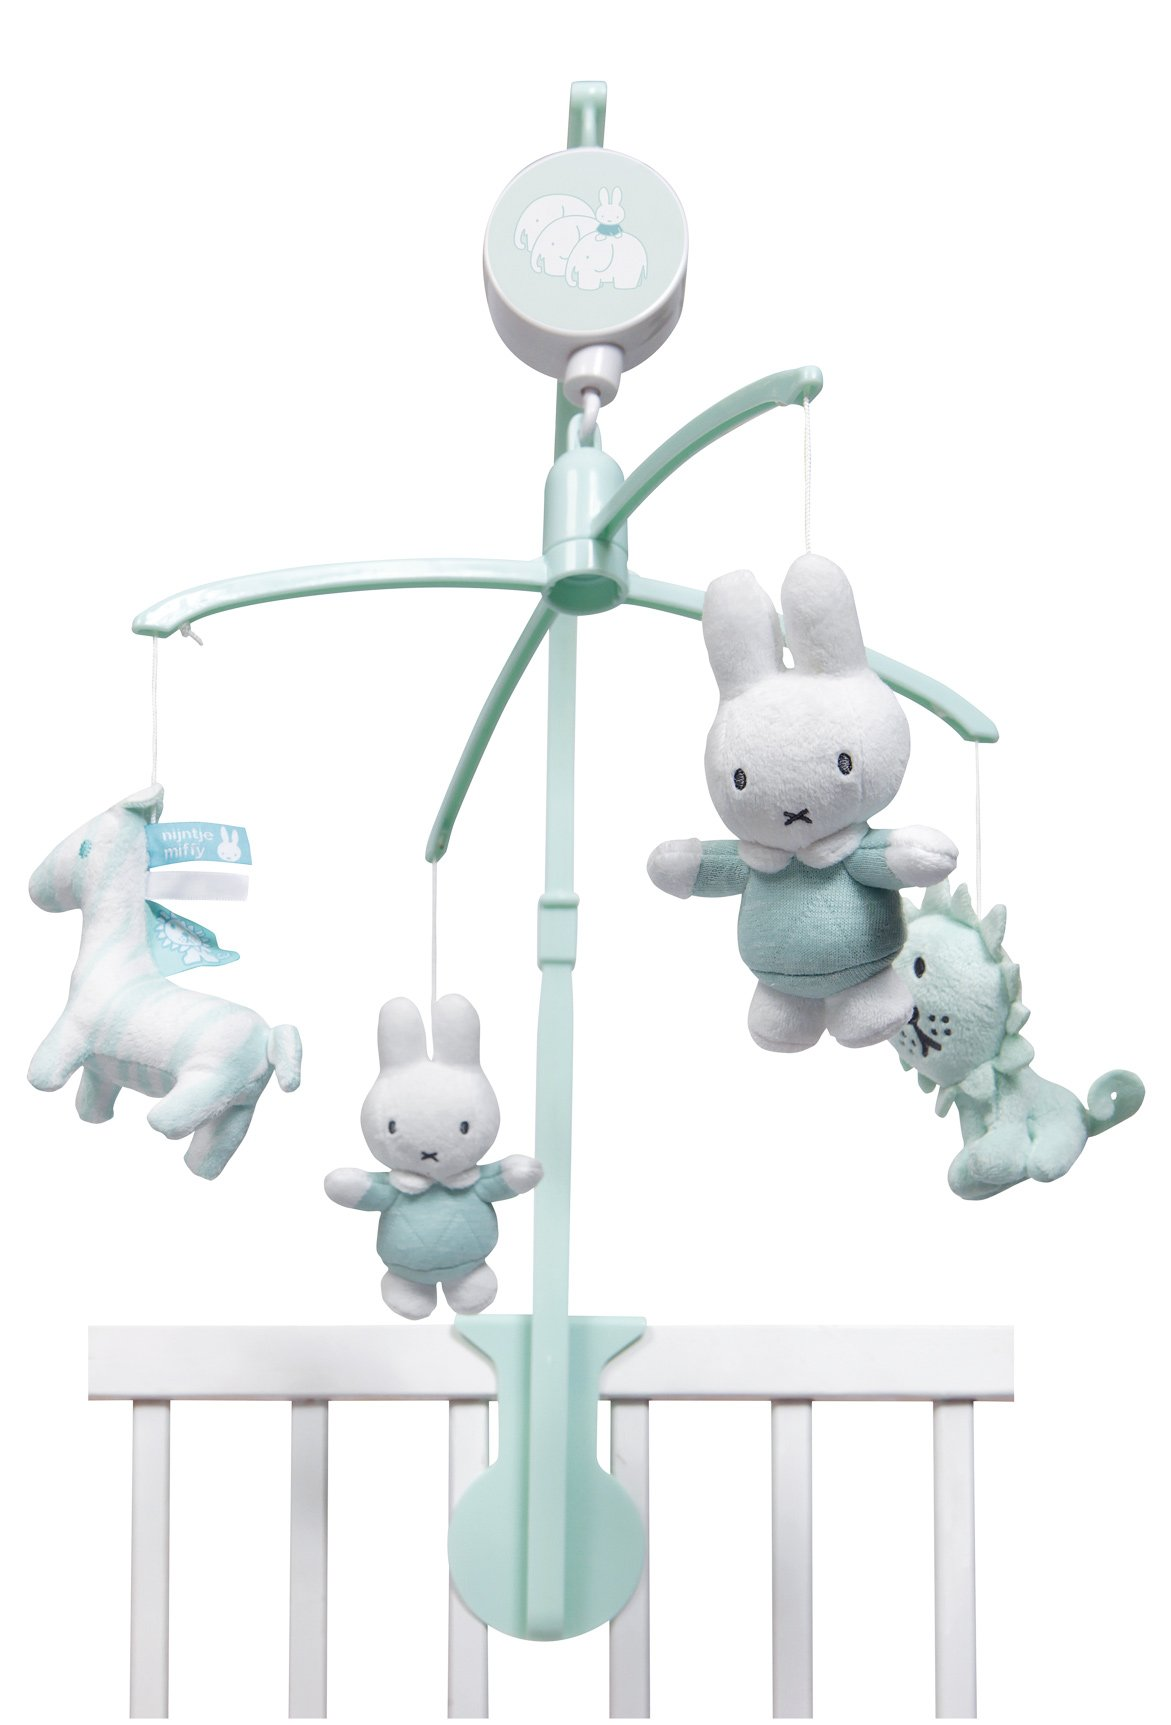 Hase Miffy Mobile Musikmobile mint mit Halterung - Twinkle Twinkle 6